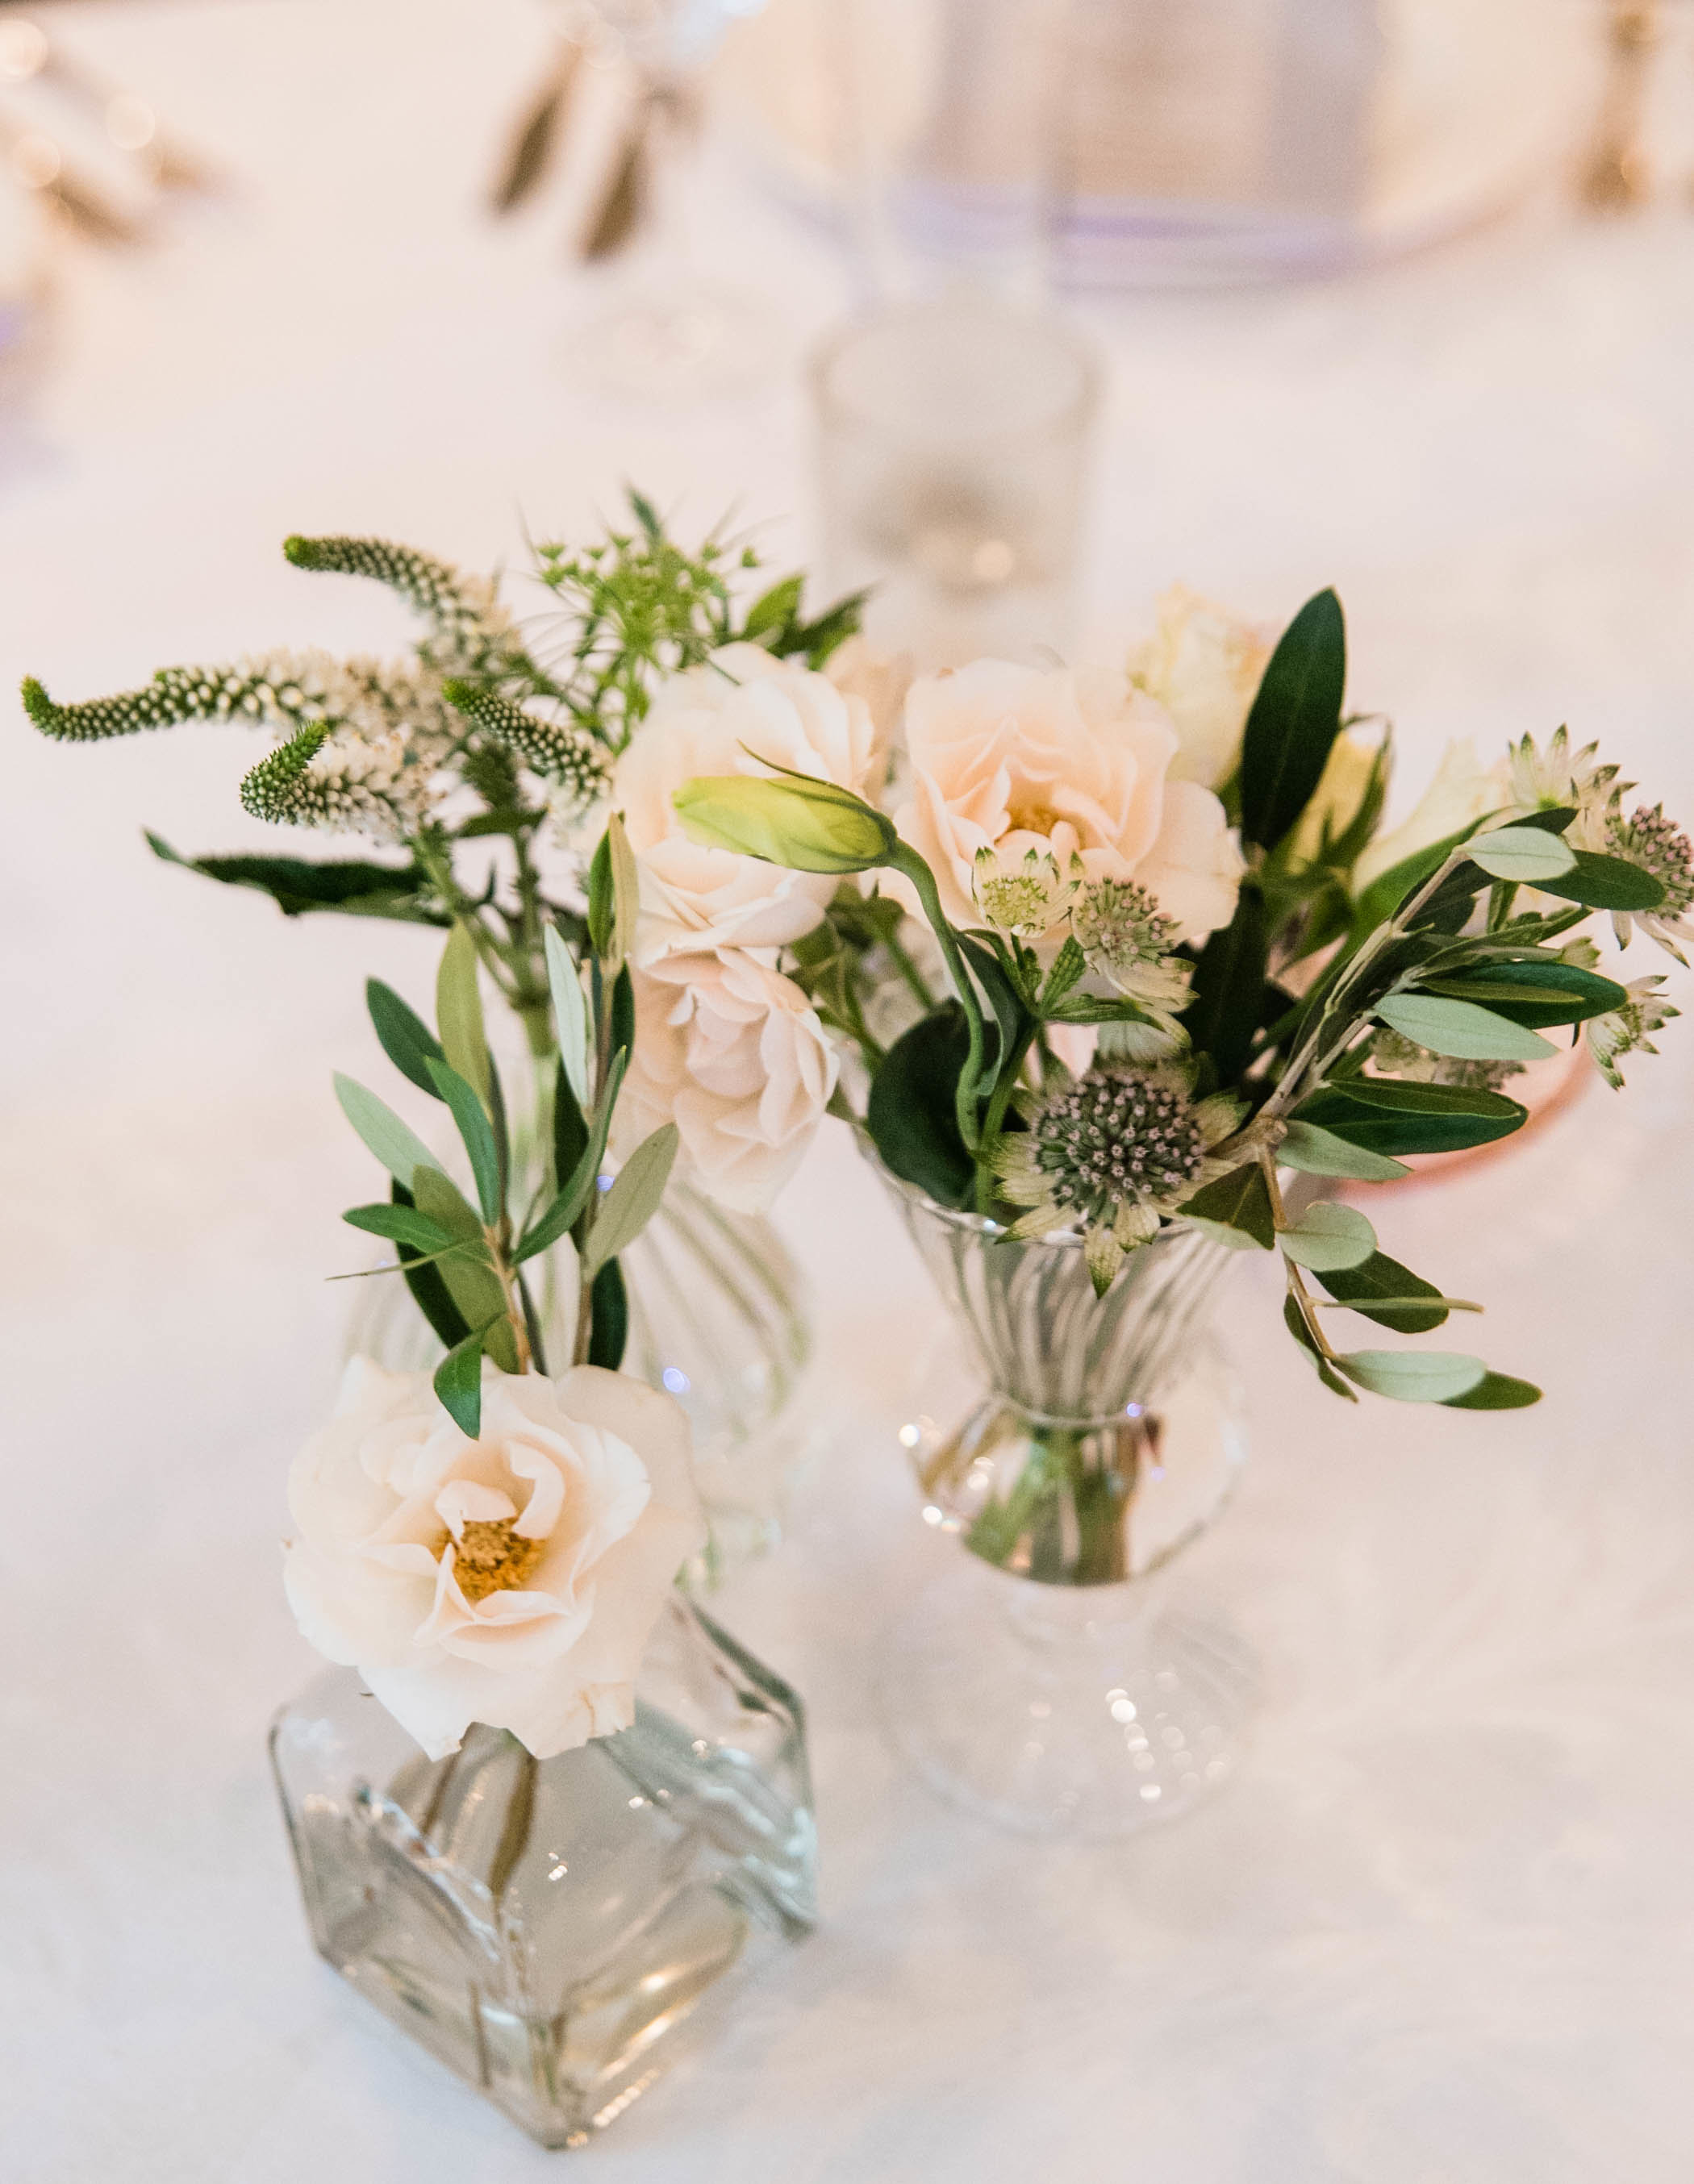 Minimalist bud vase centerpiece of white flowers and greenery by Wild Fleurette, Virginia + destination event florist.jpg